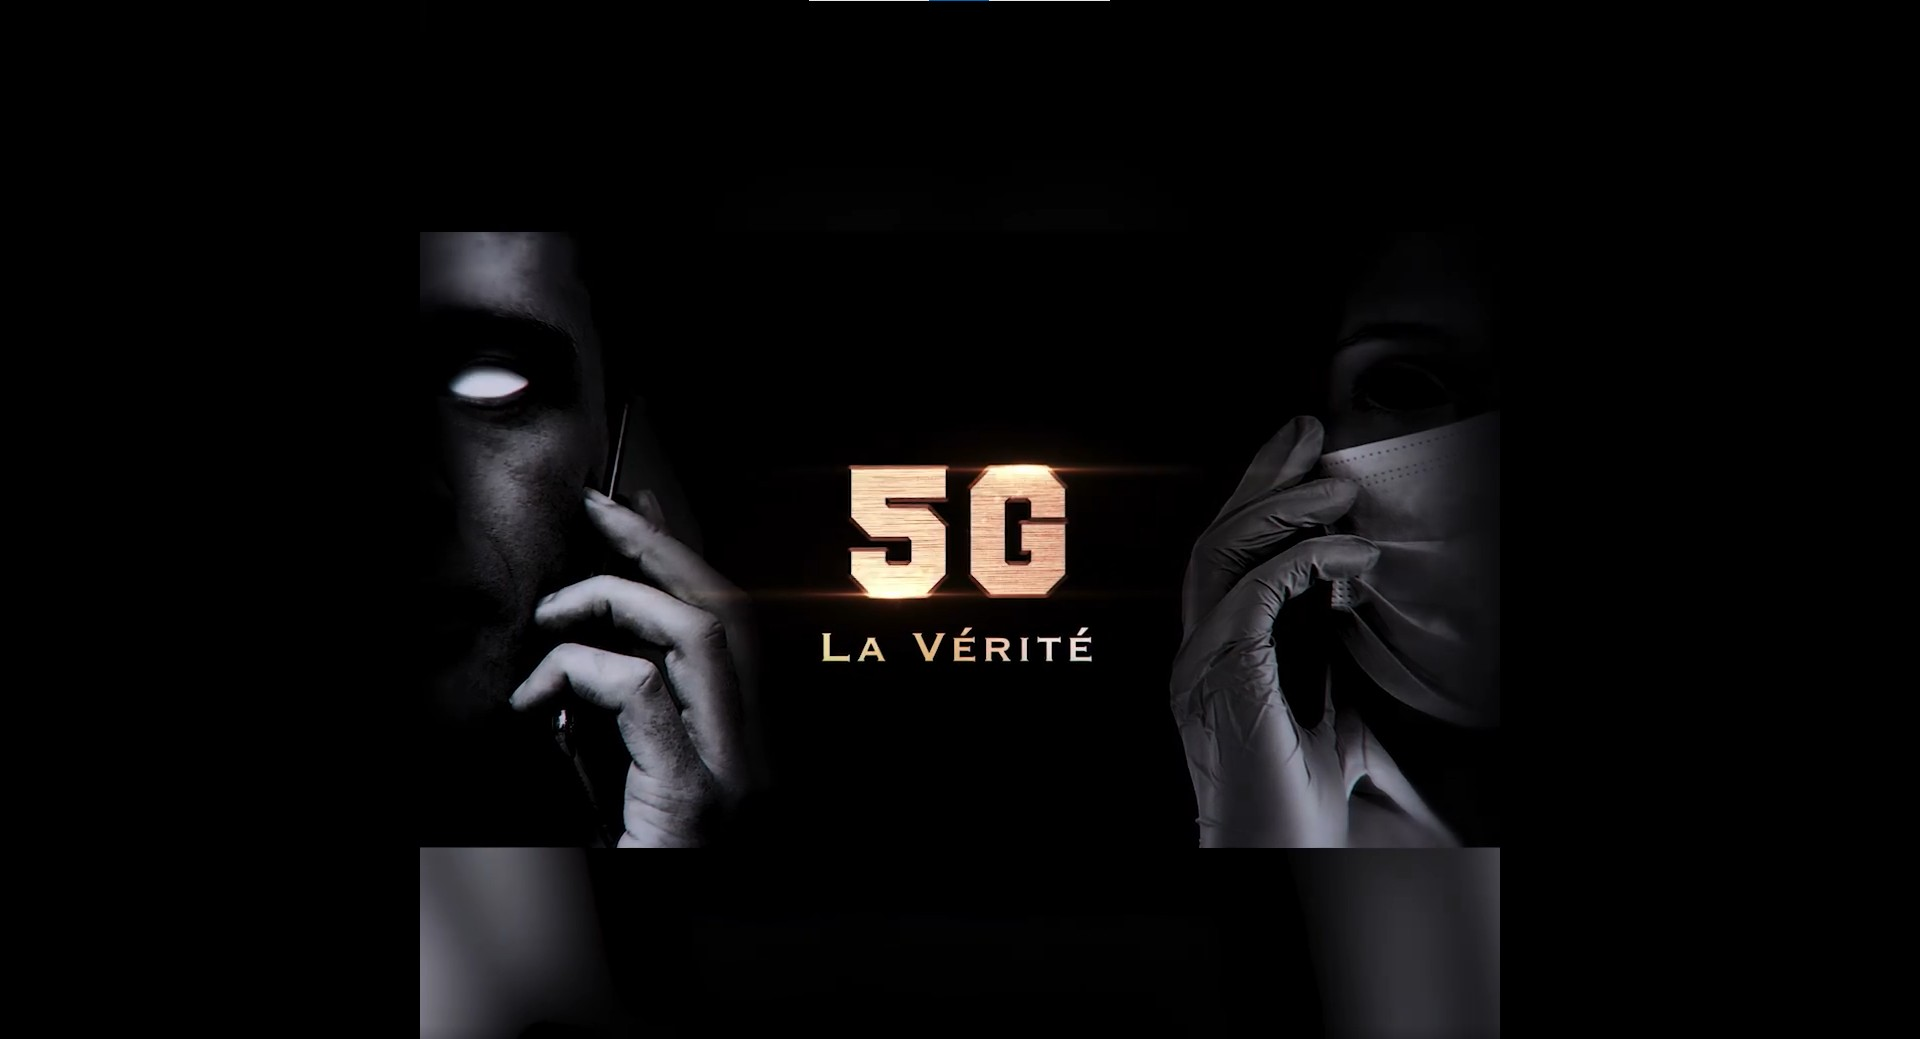 Quand Free parodie le documentaire Hold-Up pour sa 5G !